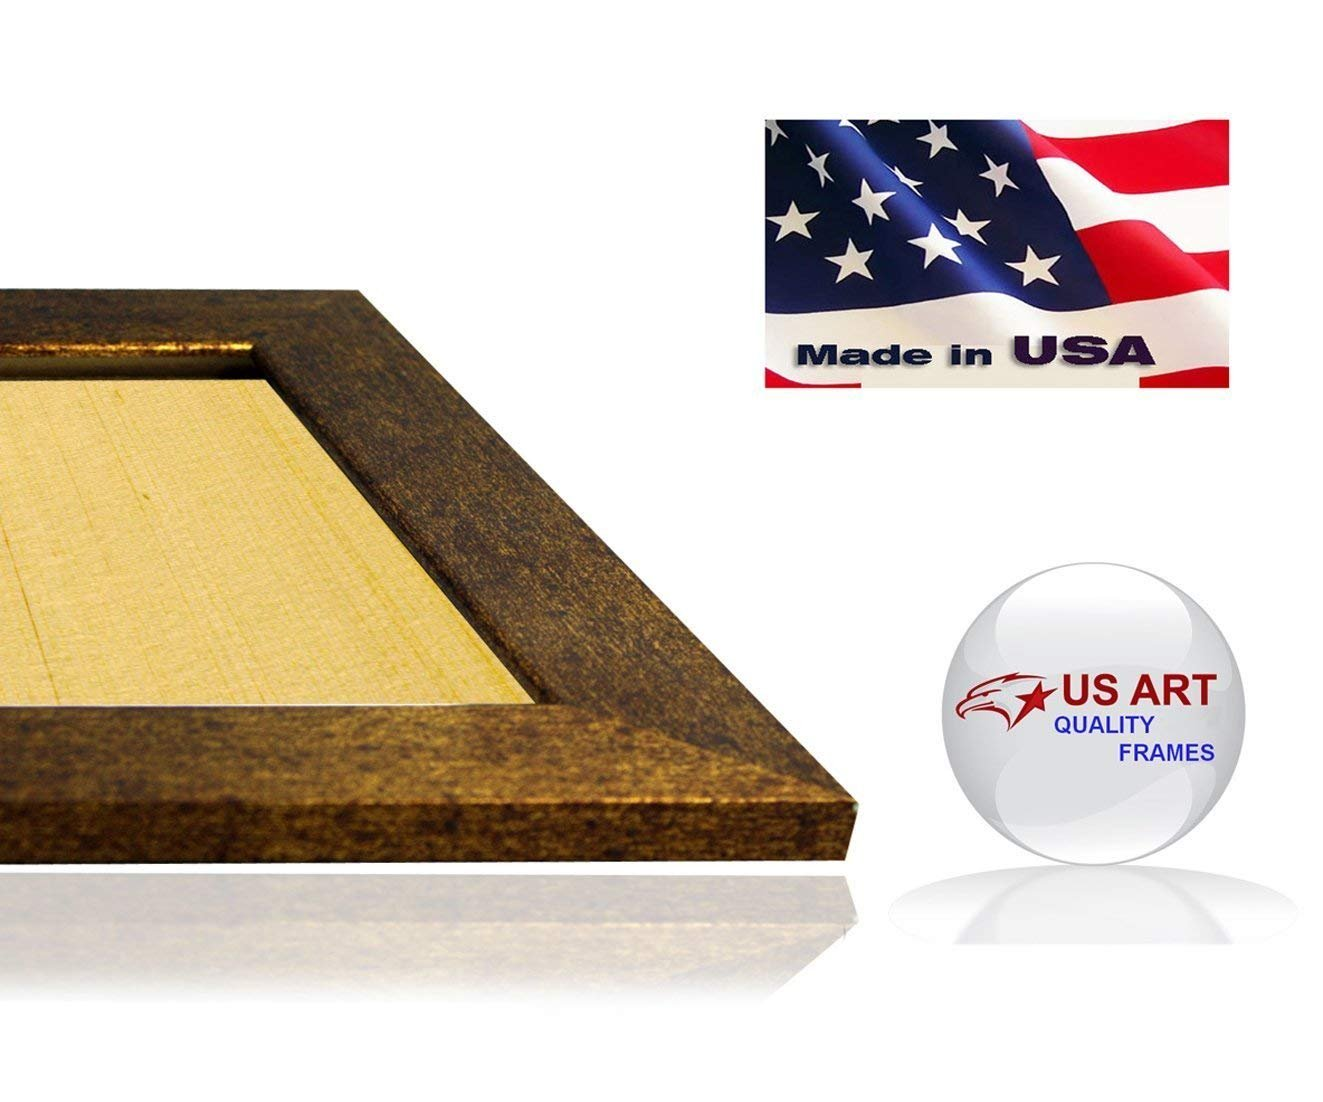 US Art Frames 20x28 Brushed Copper Brass Finish Flat 1.5 Inch, MDF Wood Composite, Picture Poster Frame